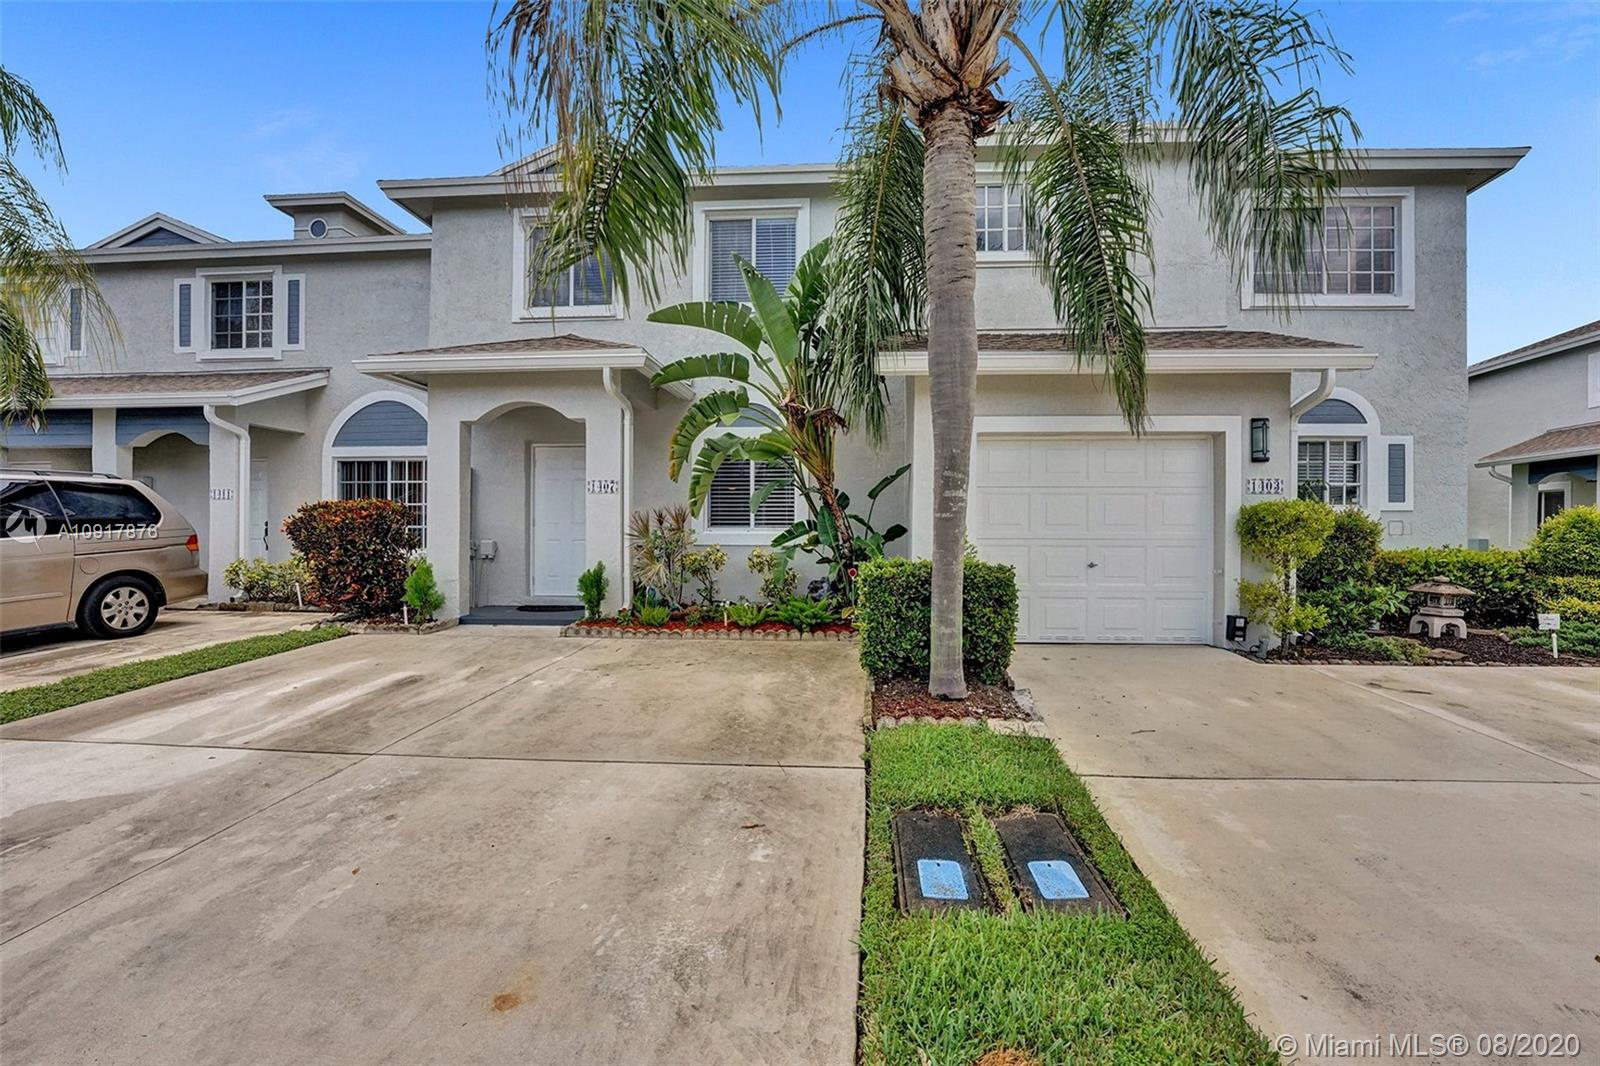 Spacious 3/2.5 Townhome in Heron Landing with eat-in kitchen, pass thru bar counter, updated tile and wood floors, walk-in close in master bedroom, full size W/D, 2 car driveway pad, gated community with live guards, newly painted walls, upgraded light fixtures and ceiling fans, screened in patio, large pets are welcome, crown molding — no dated popcorn ceiling, Updated powder room,Extra storage under the stairwell and outside storage room, quiet patio and outdoor area, perfect for backyard barbecues.Two clubhouses,two community pools, two tot lots, onsite fitness center , walking paths — perfect for jogging, lake views, plenty of community spaces to enjoy sunny South Florida, 24-hour staffed guard gate, pet stations, strong sense of community.